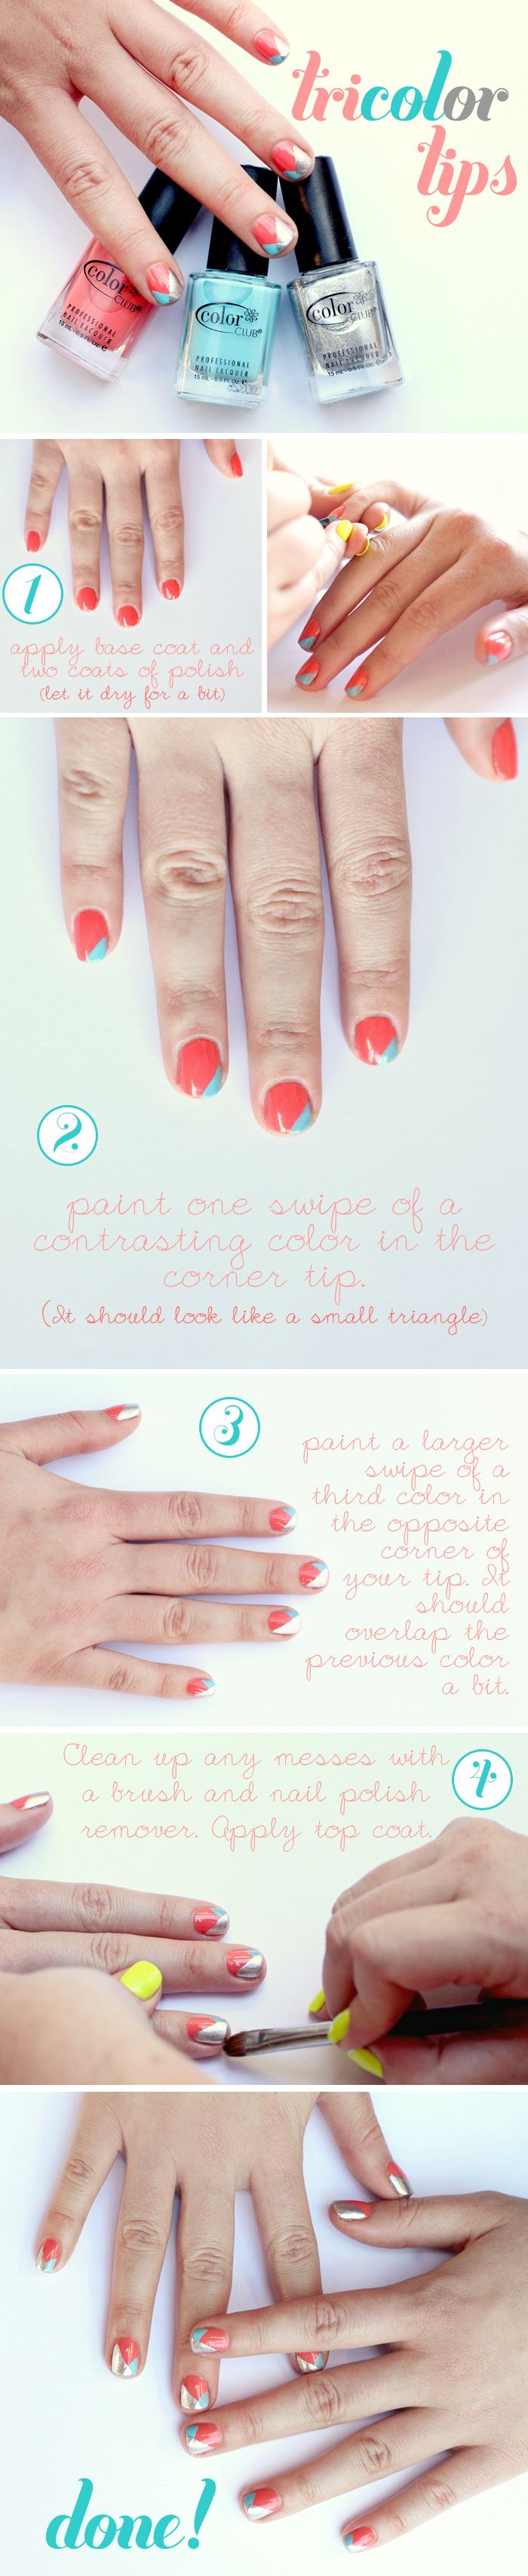 Tricolor nails: Get the steps.